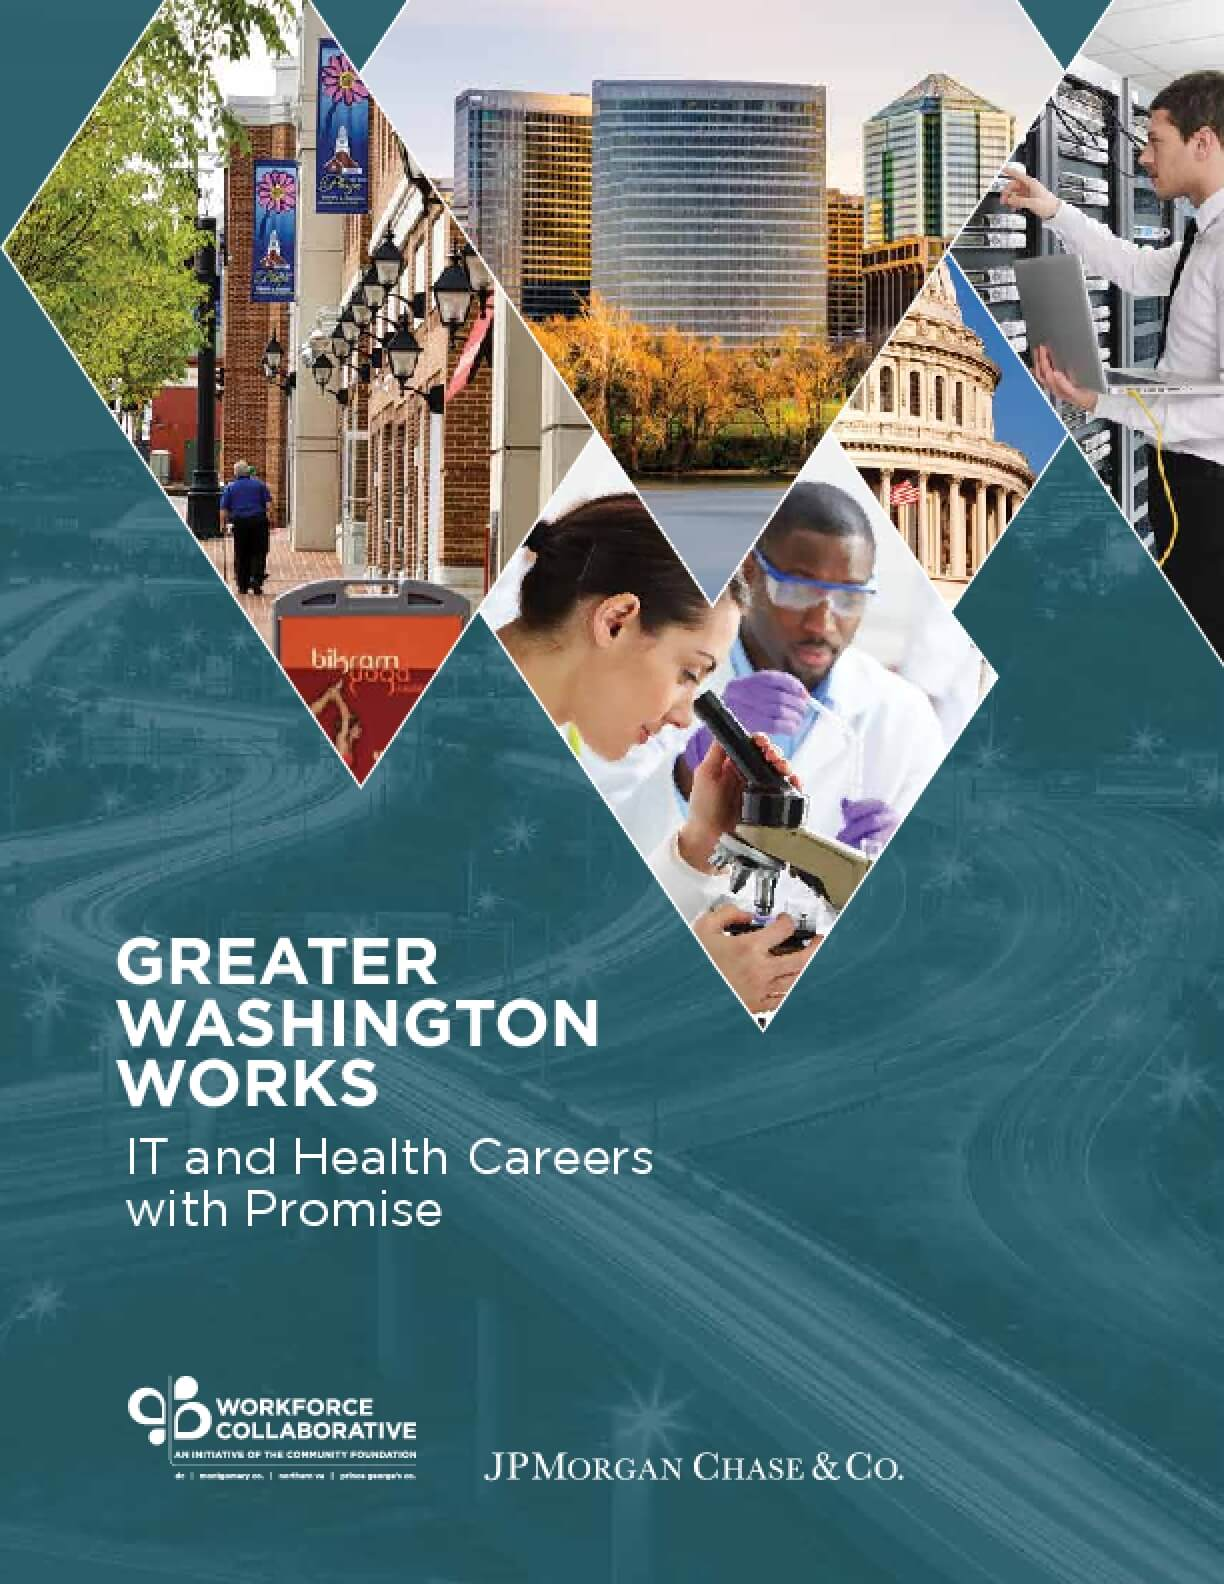 Greater Washington Works: IT and Health Careers with Promise